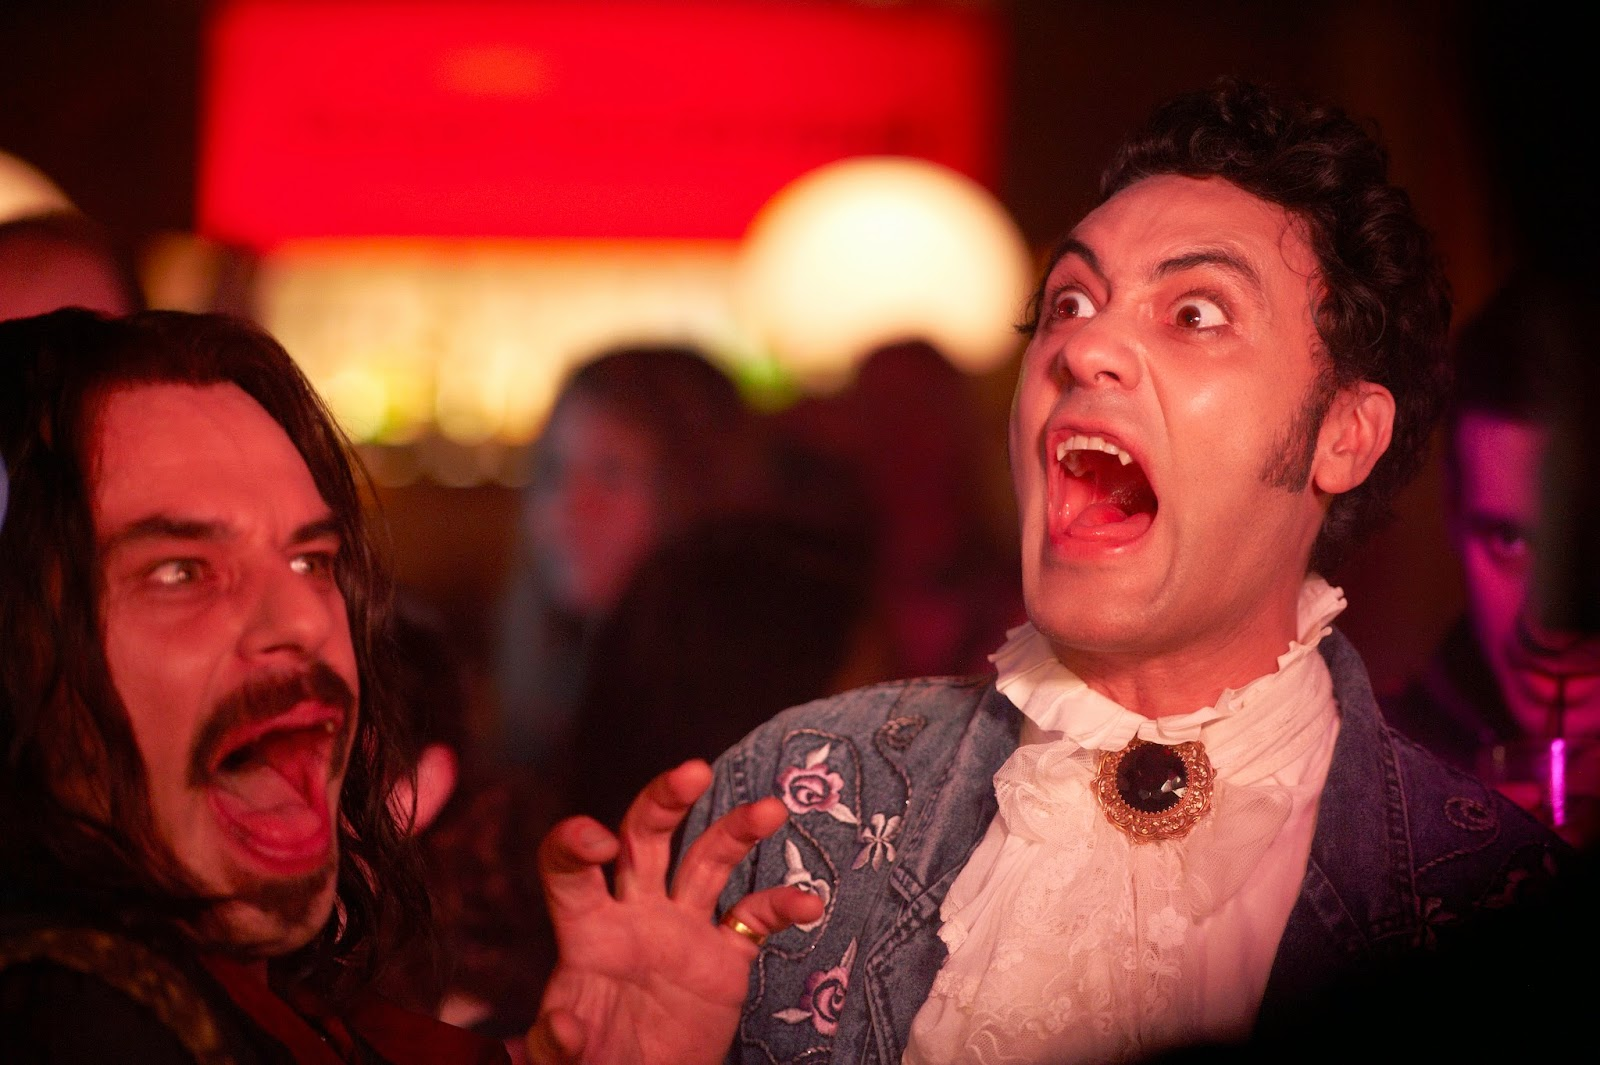 4 Zimmer Küche Sarg Trailer At Darren S World Of Entertainment What We Do In The Shadows